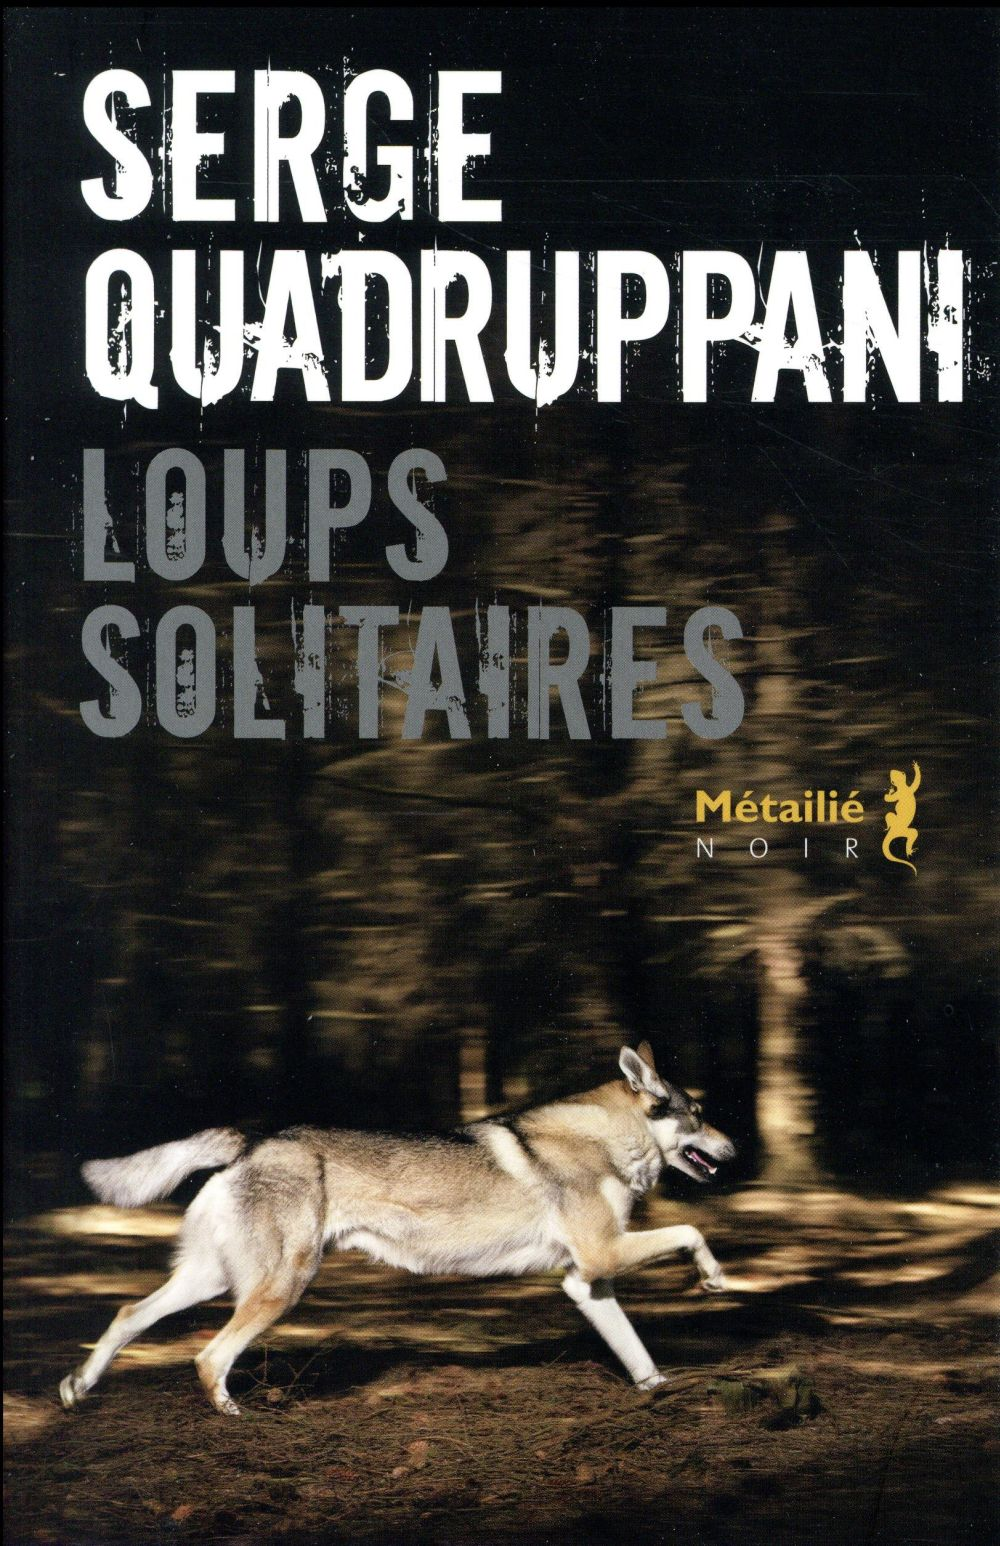 Loups solitaires